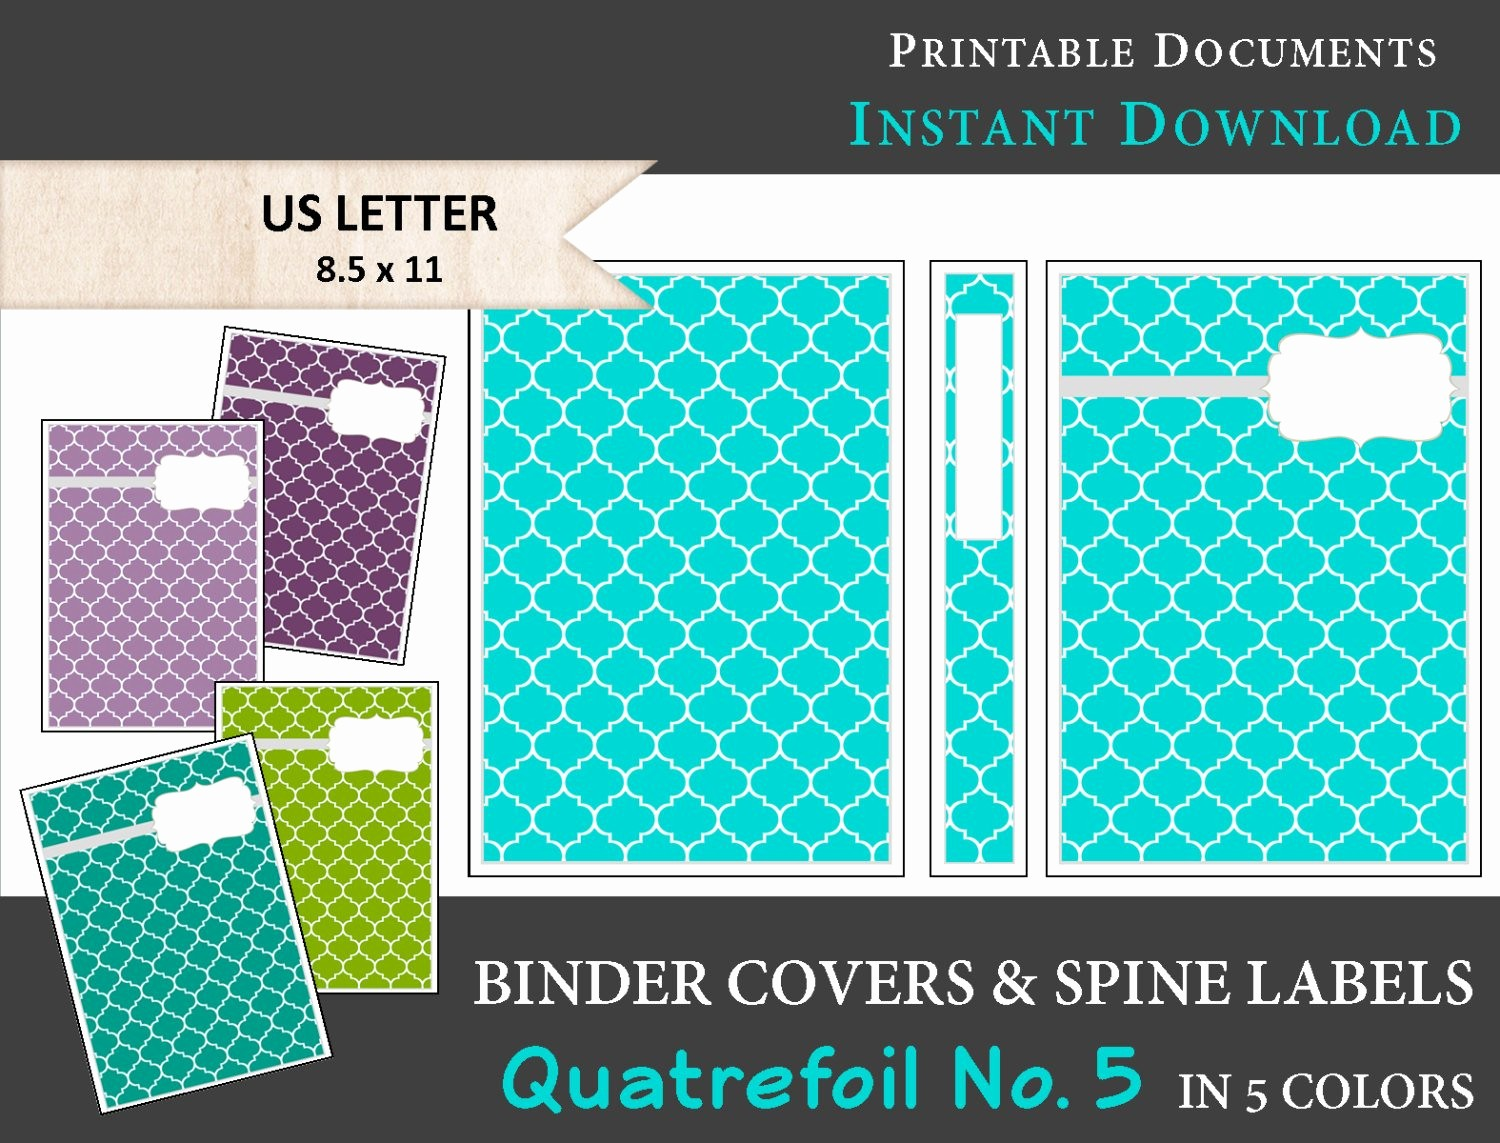 Free Binder Covers and Spines Fresh Printable Binder Covers & Spine Label Inserts In 5 Colors